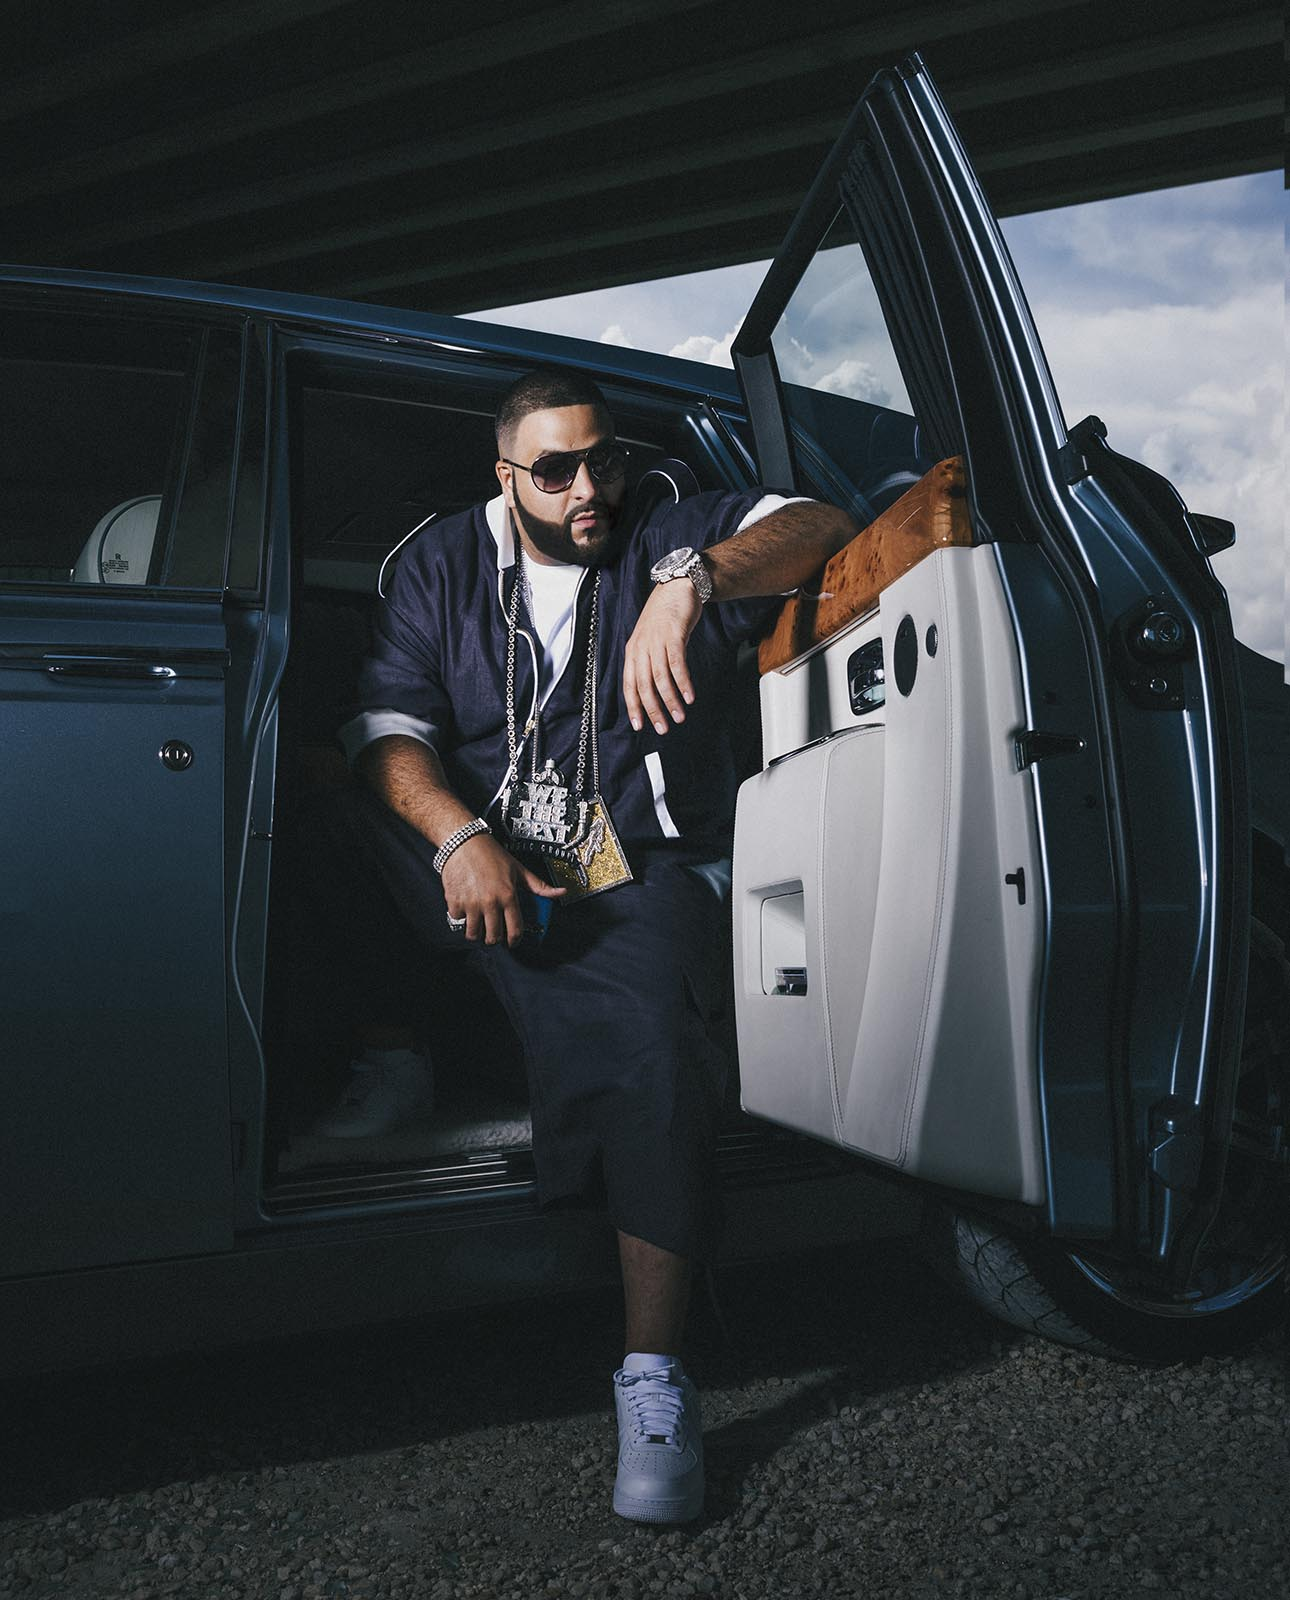 tampa-photographer-bob-croslin-DJ-khaled-miami.jpg